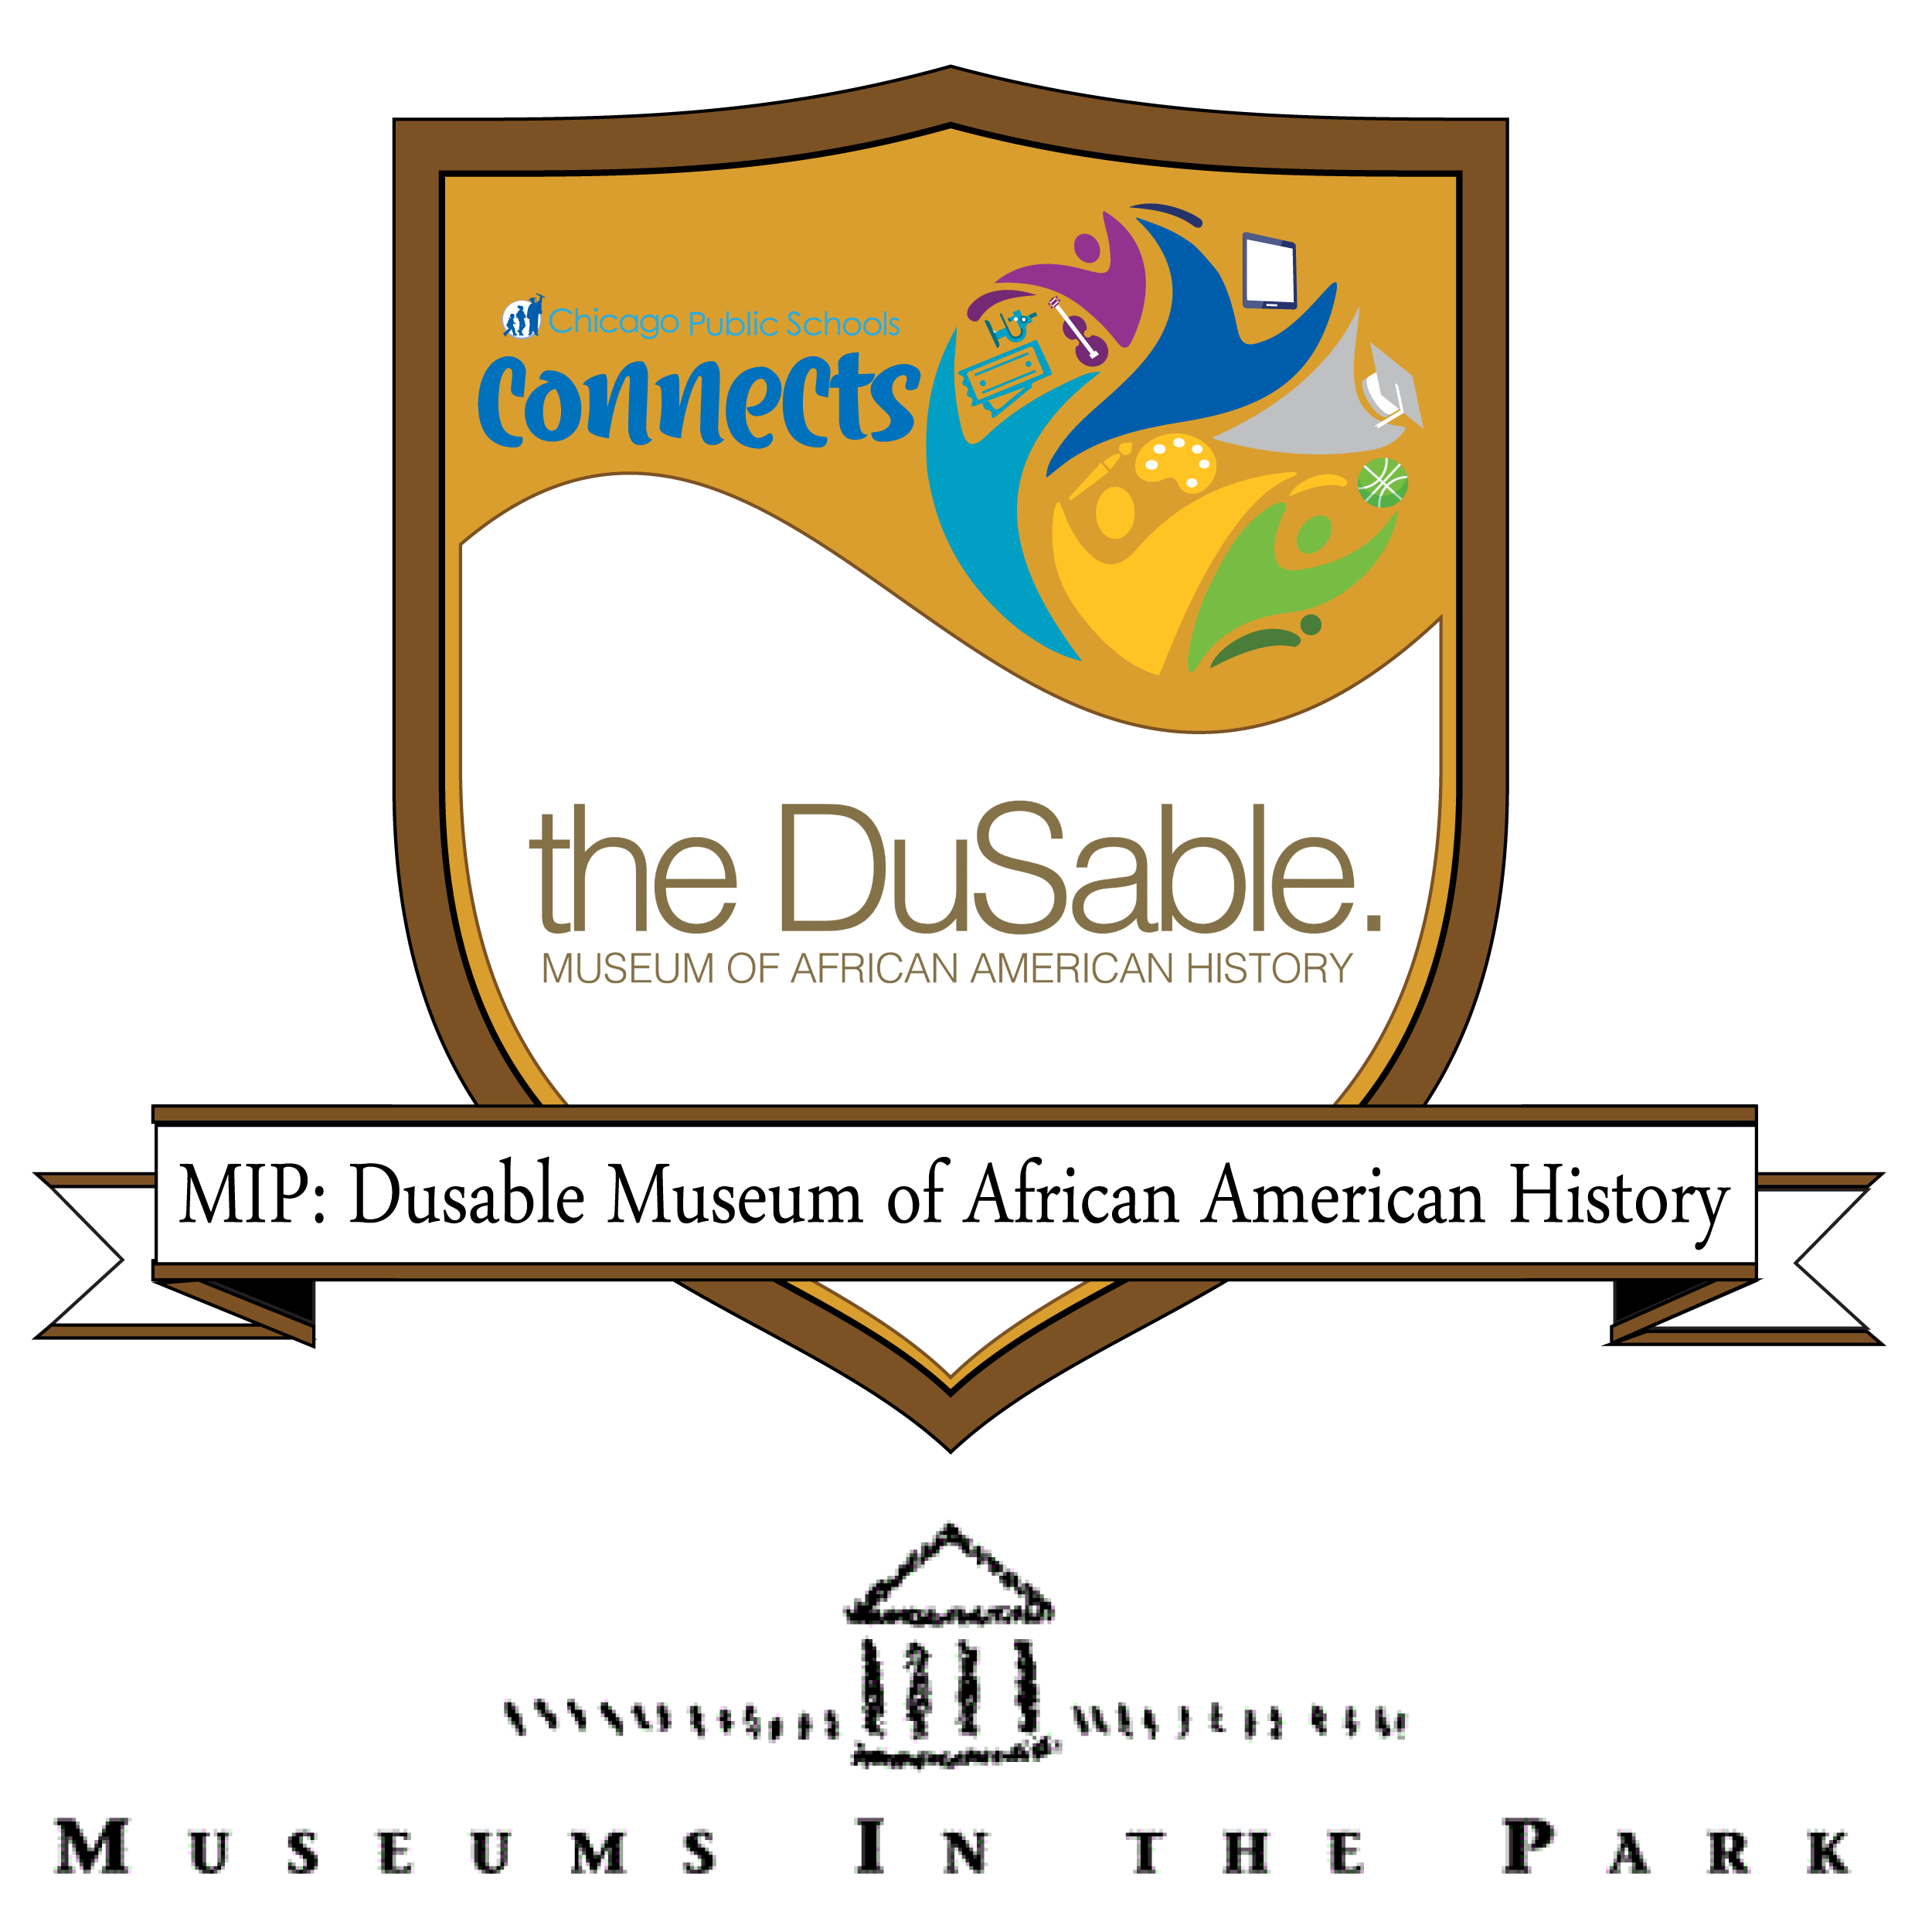 Museums in the Park: DuSable Museum of African American History